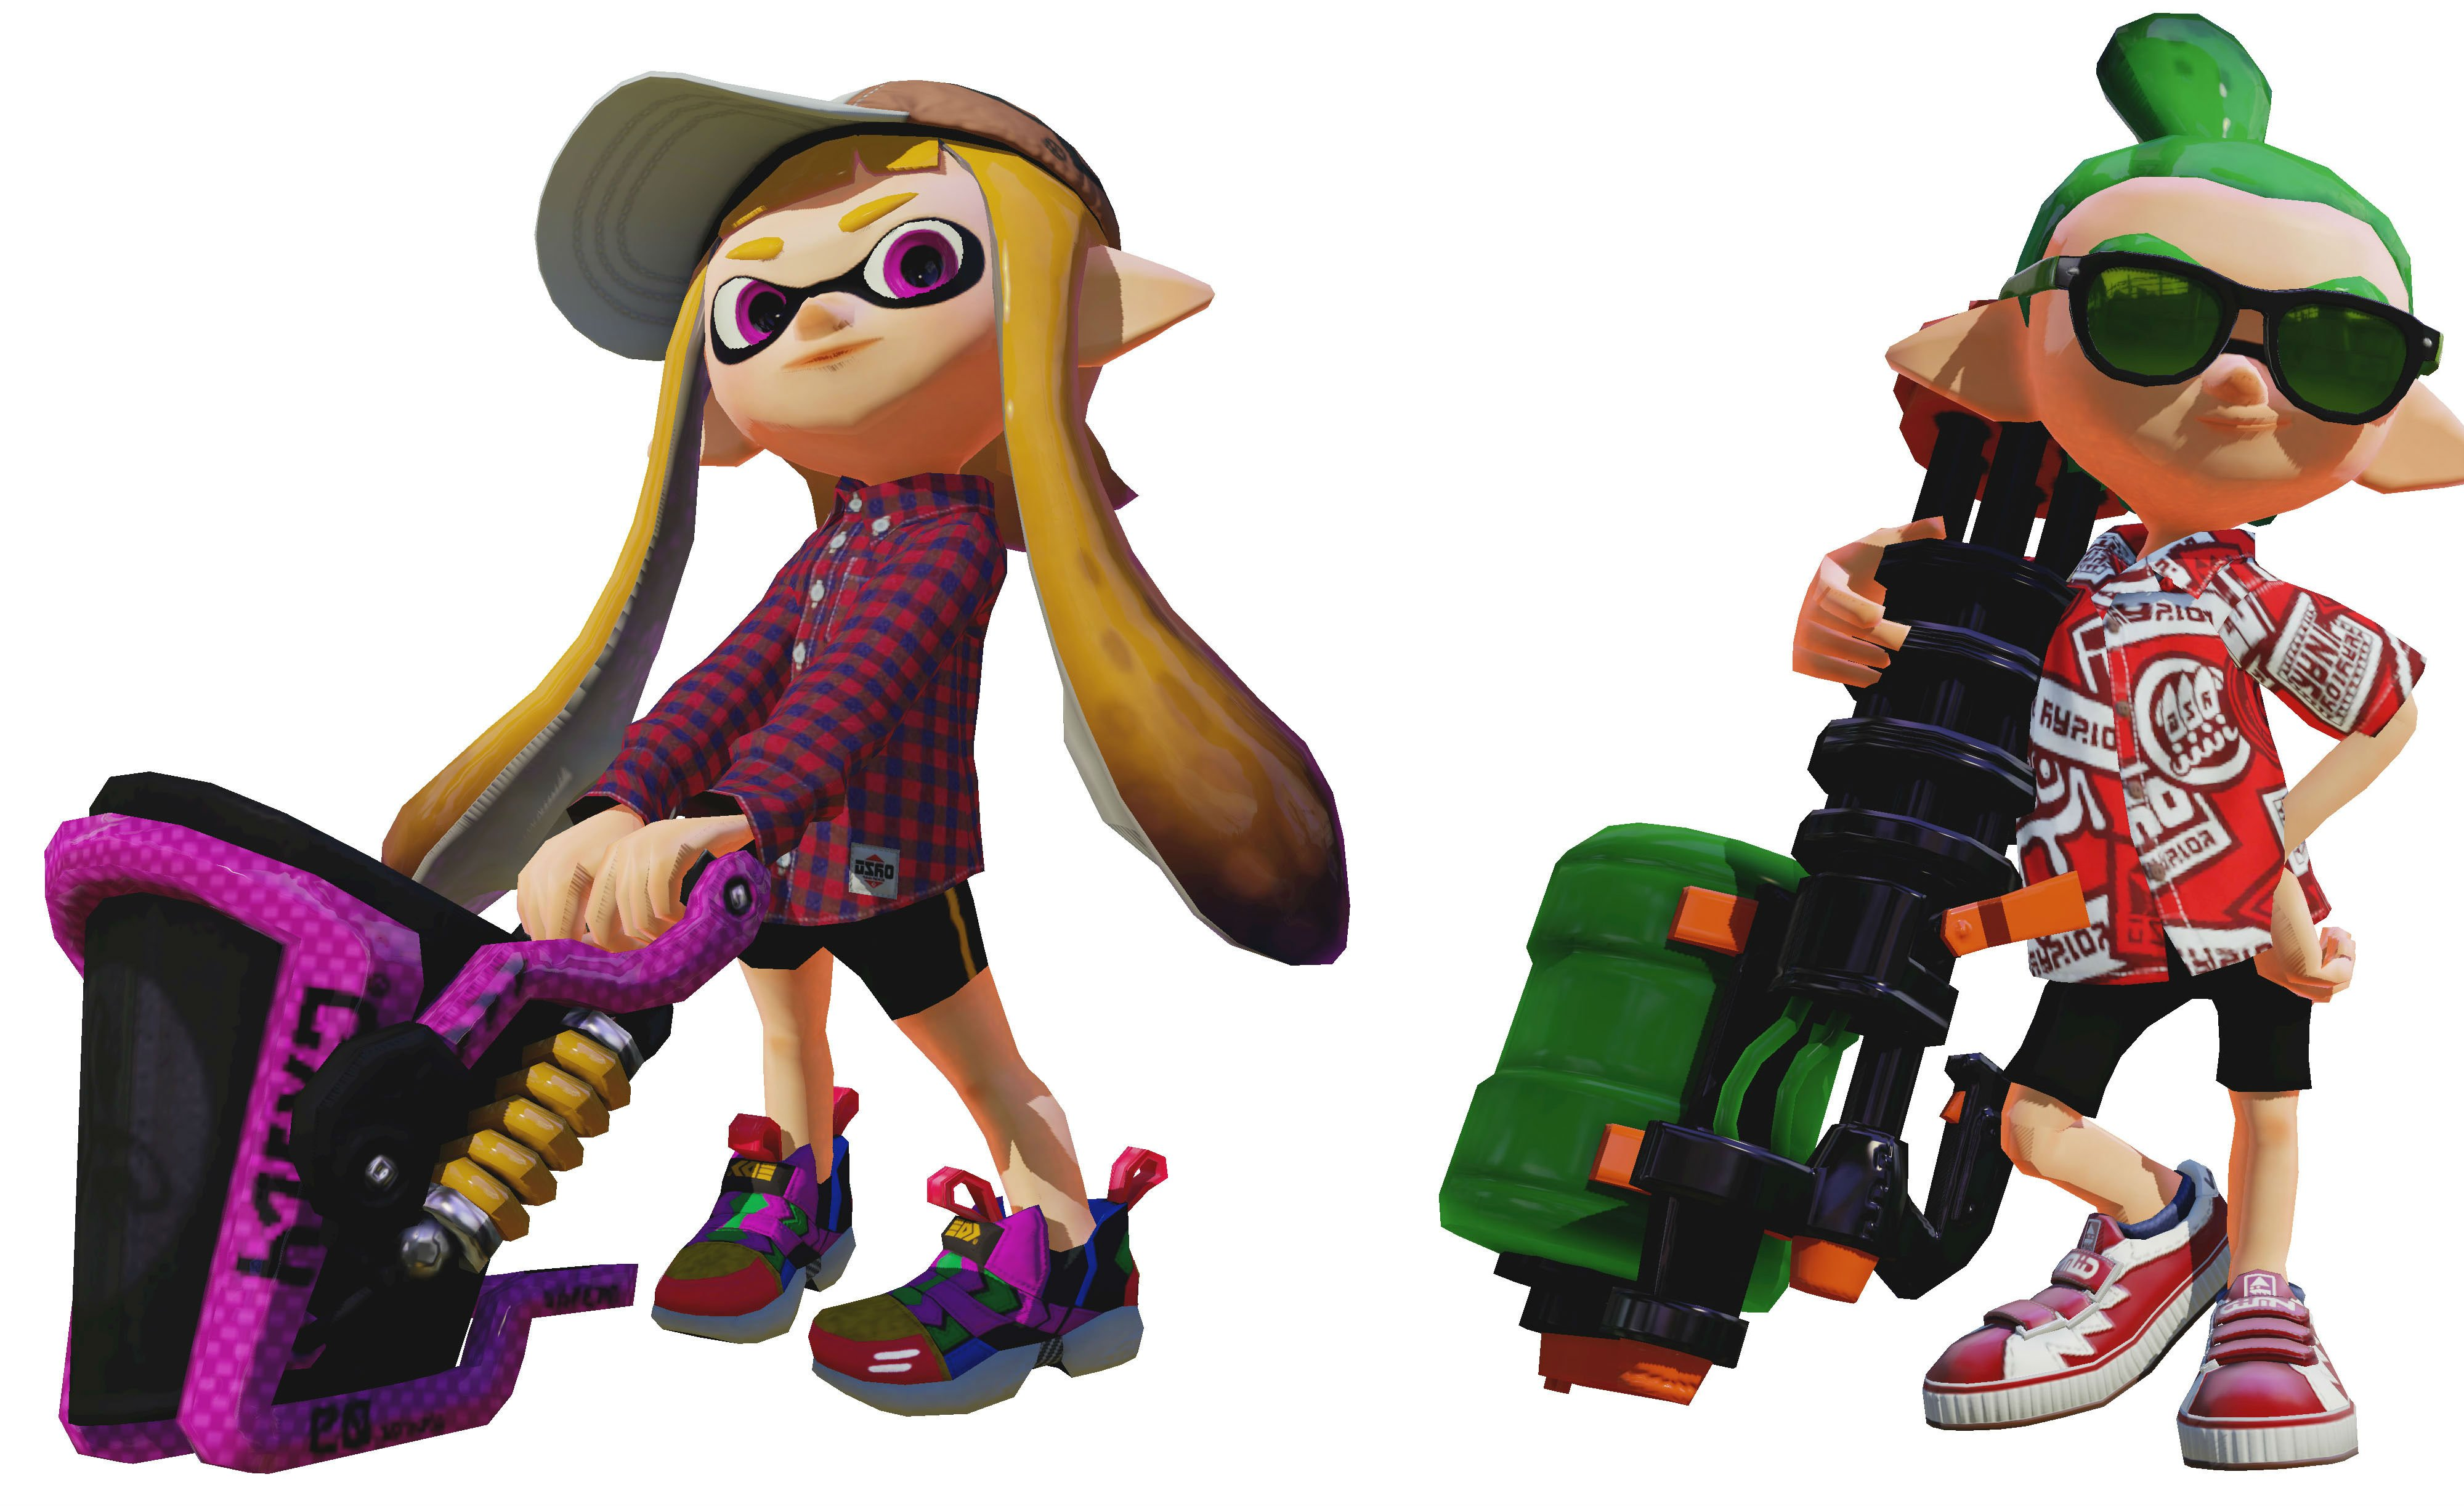 Splatoon photo